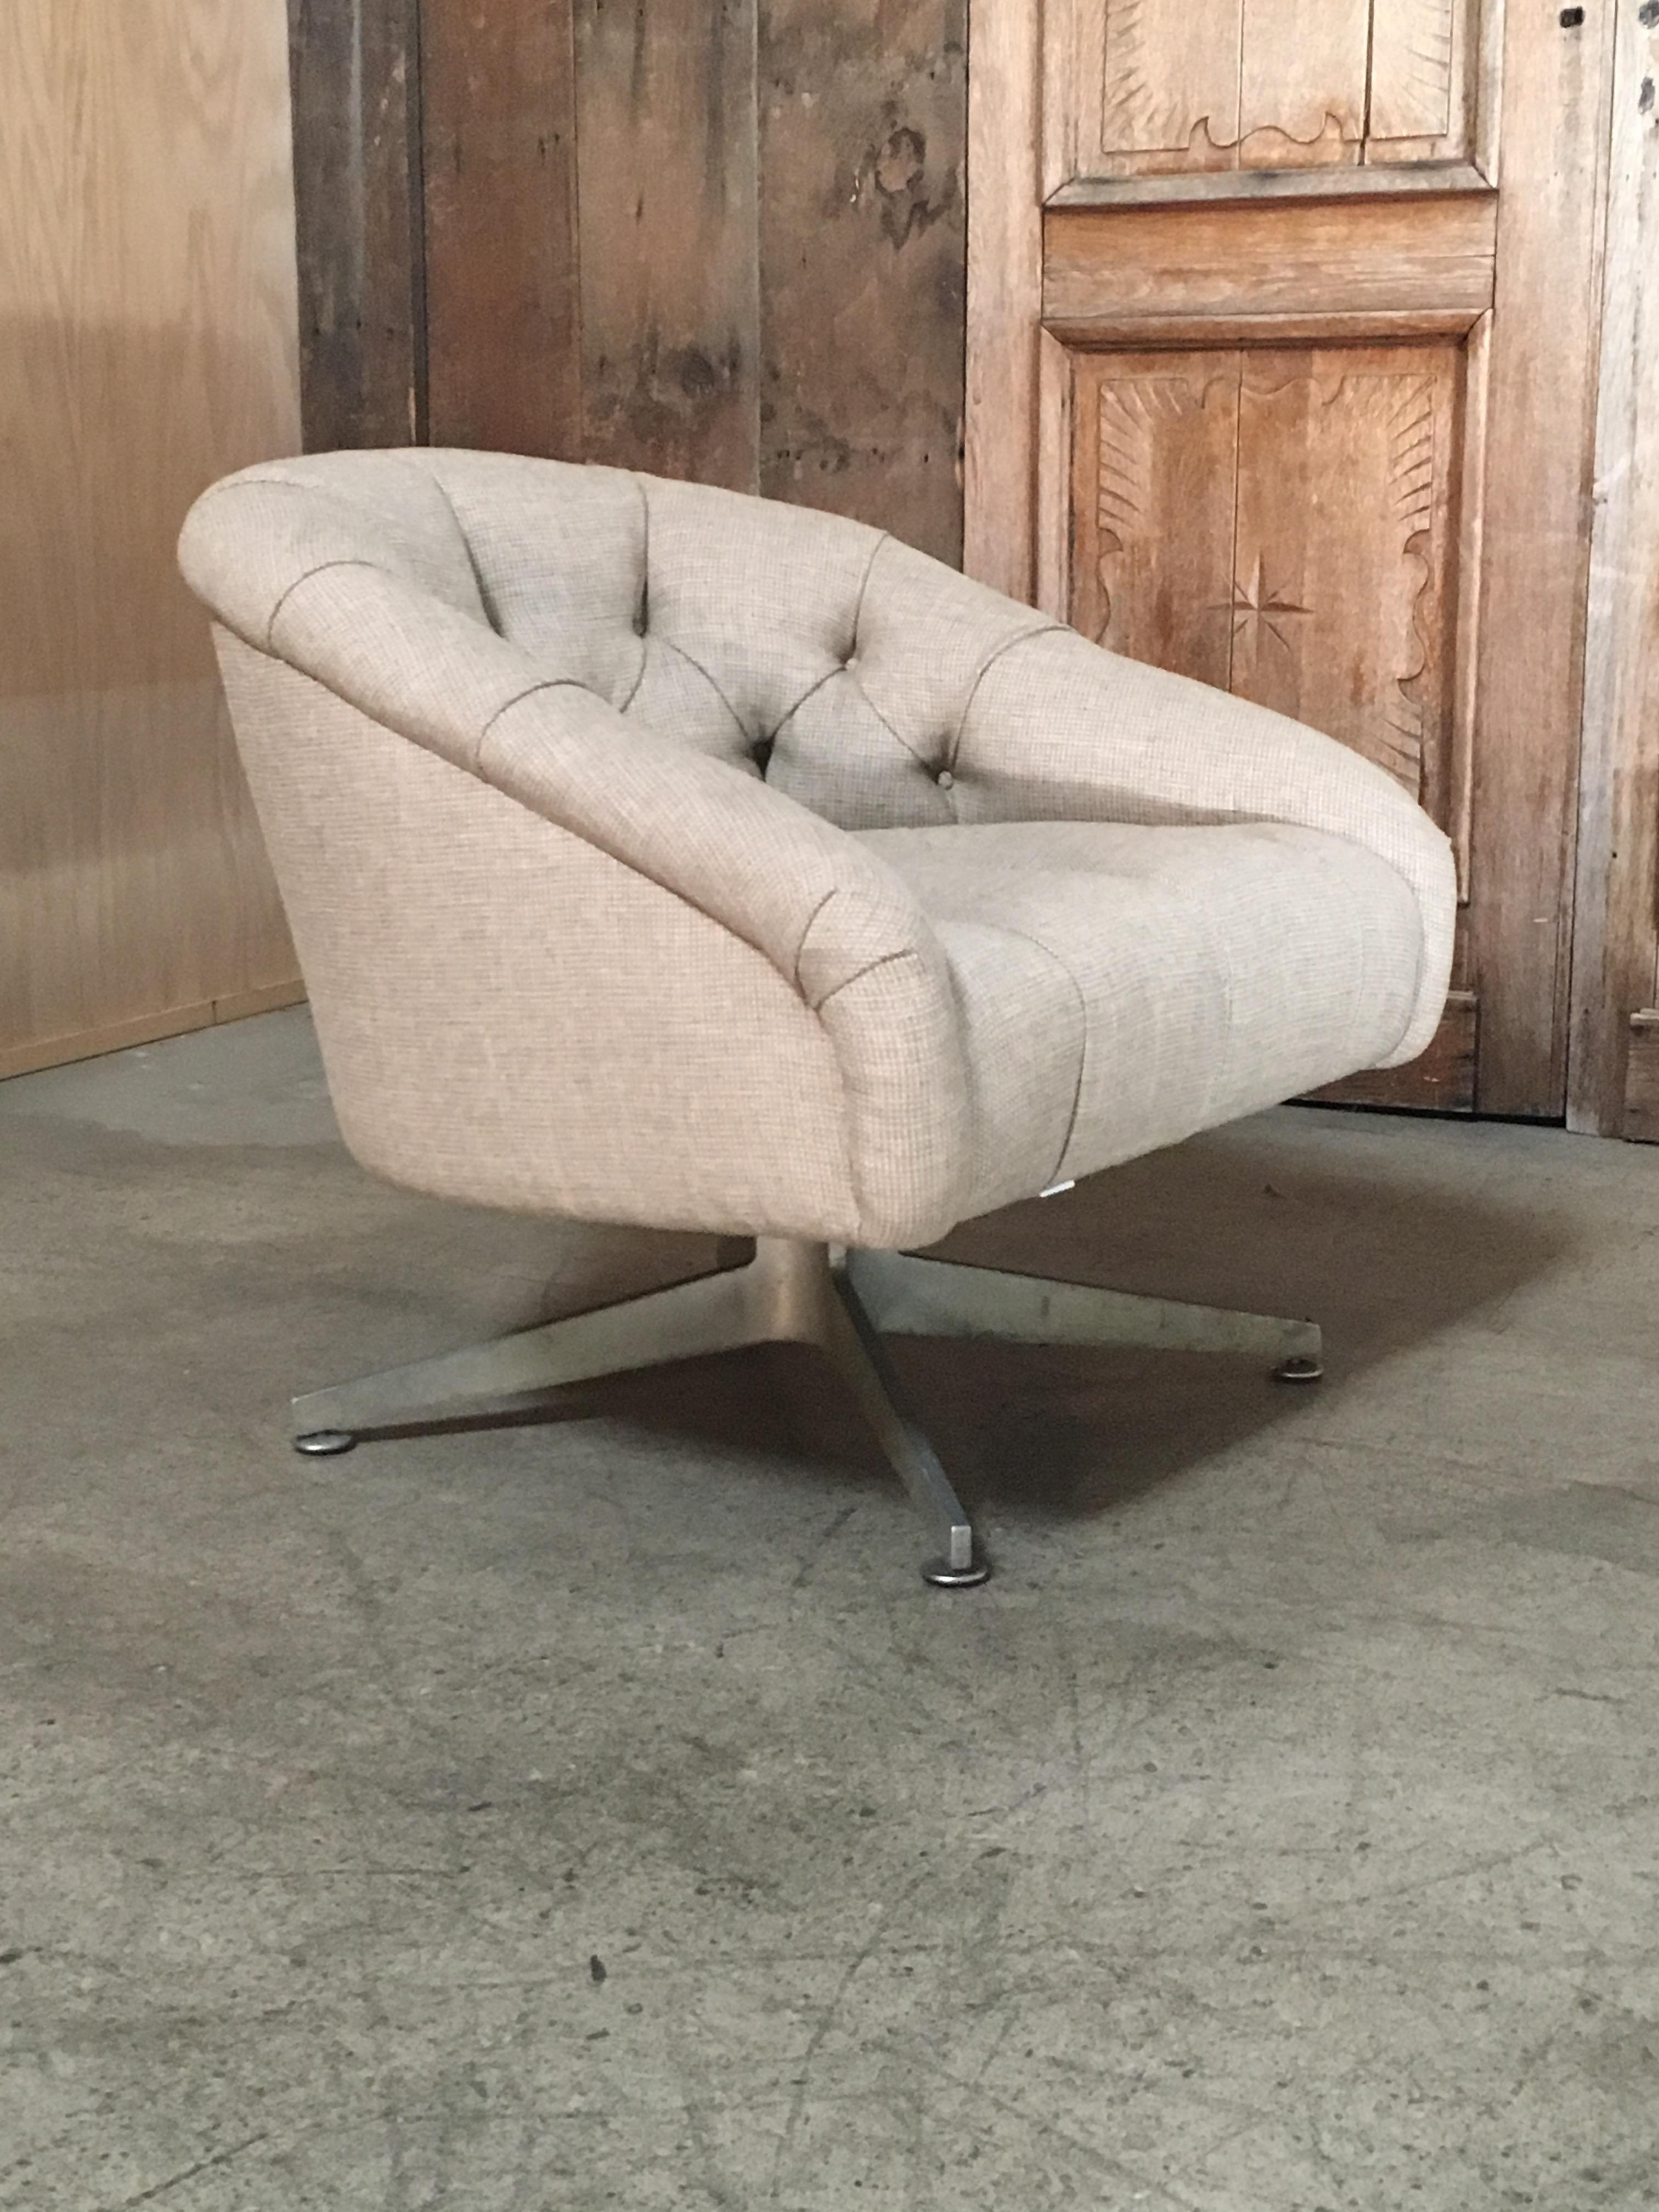 Lehigh Leopold Ward Bennett Swivel Lounge Chair For Sale   Image 4 Of 5